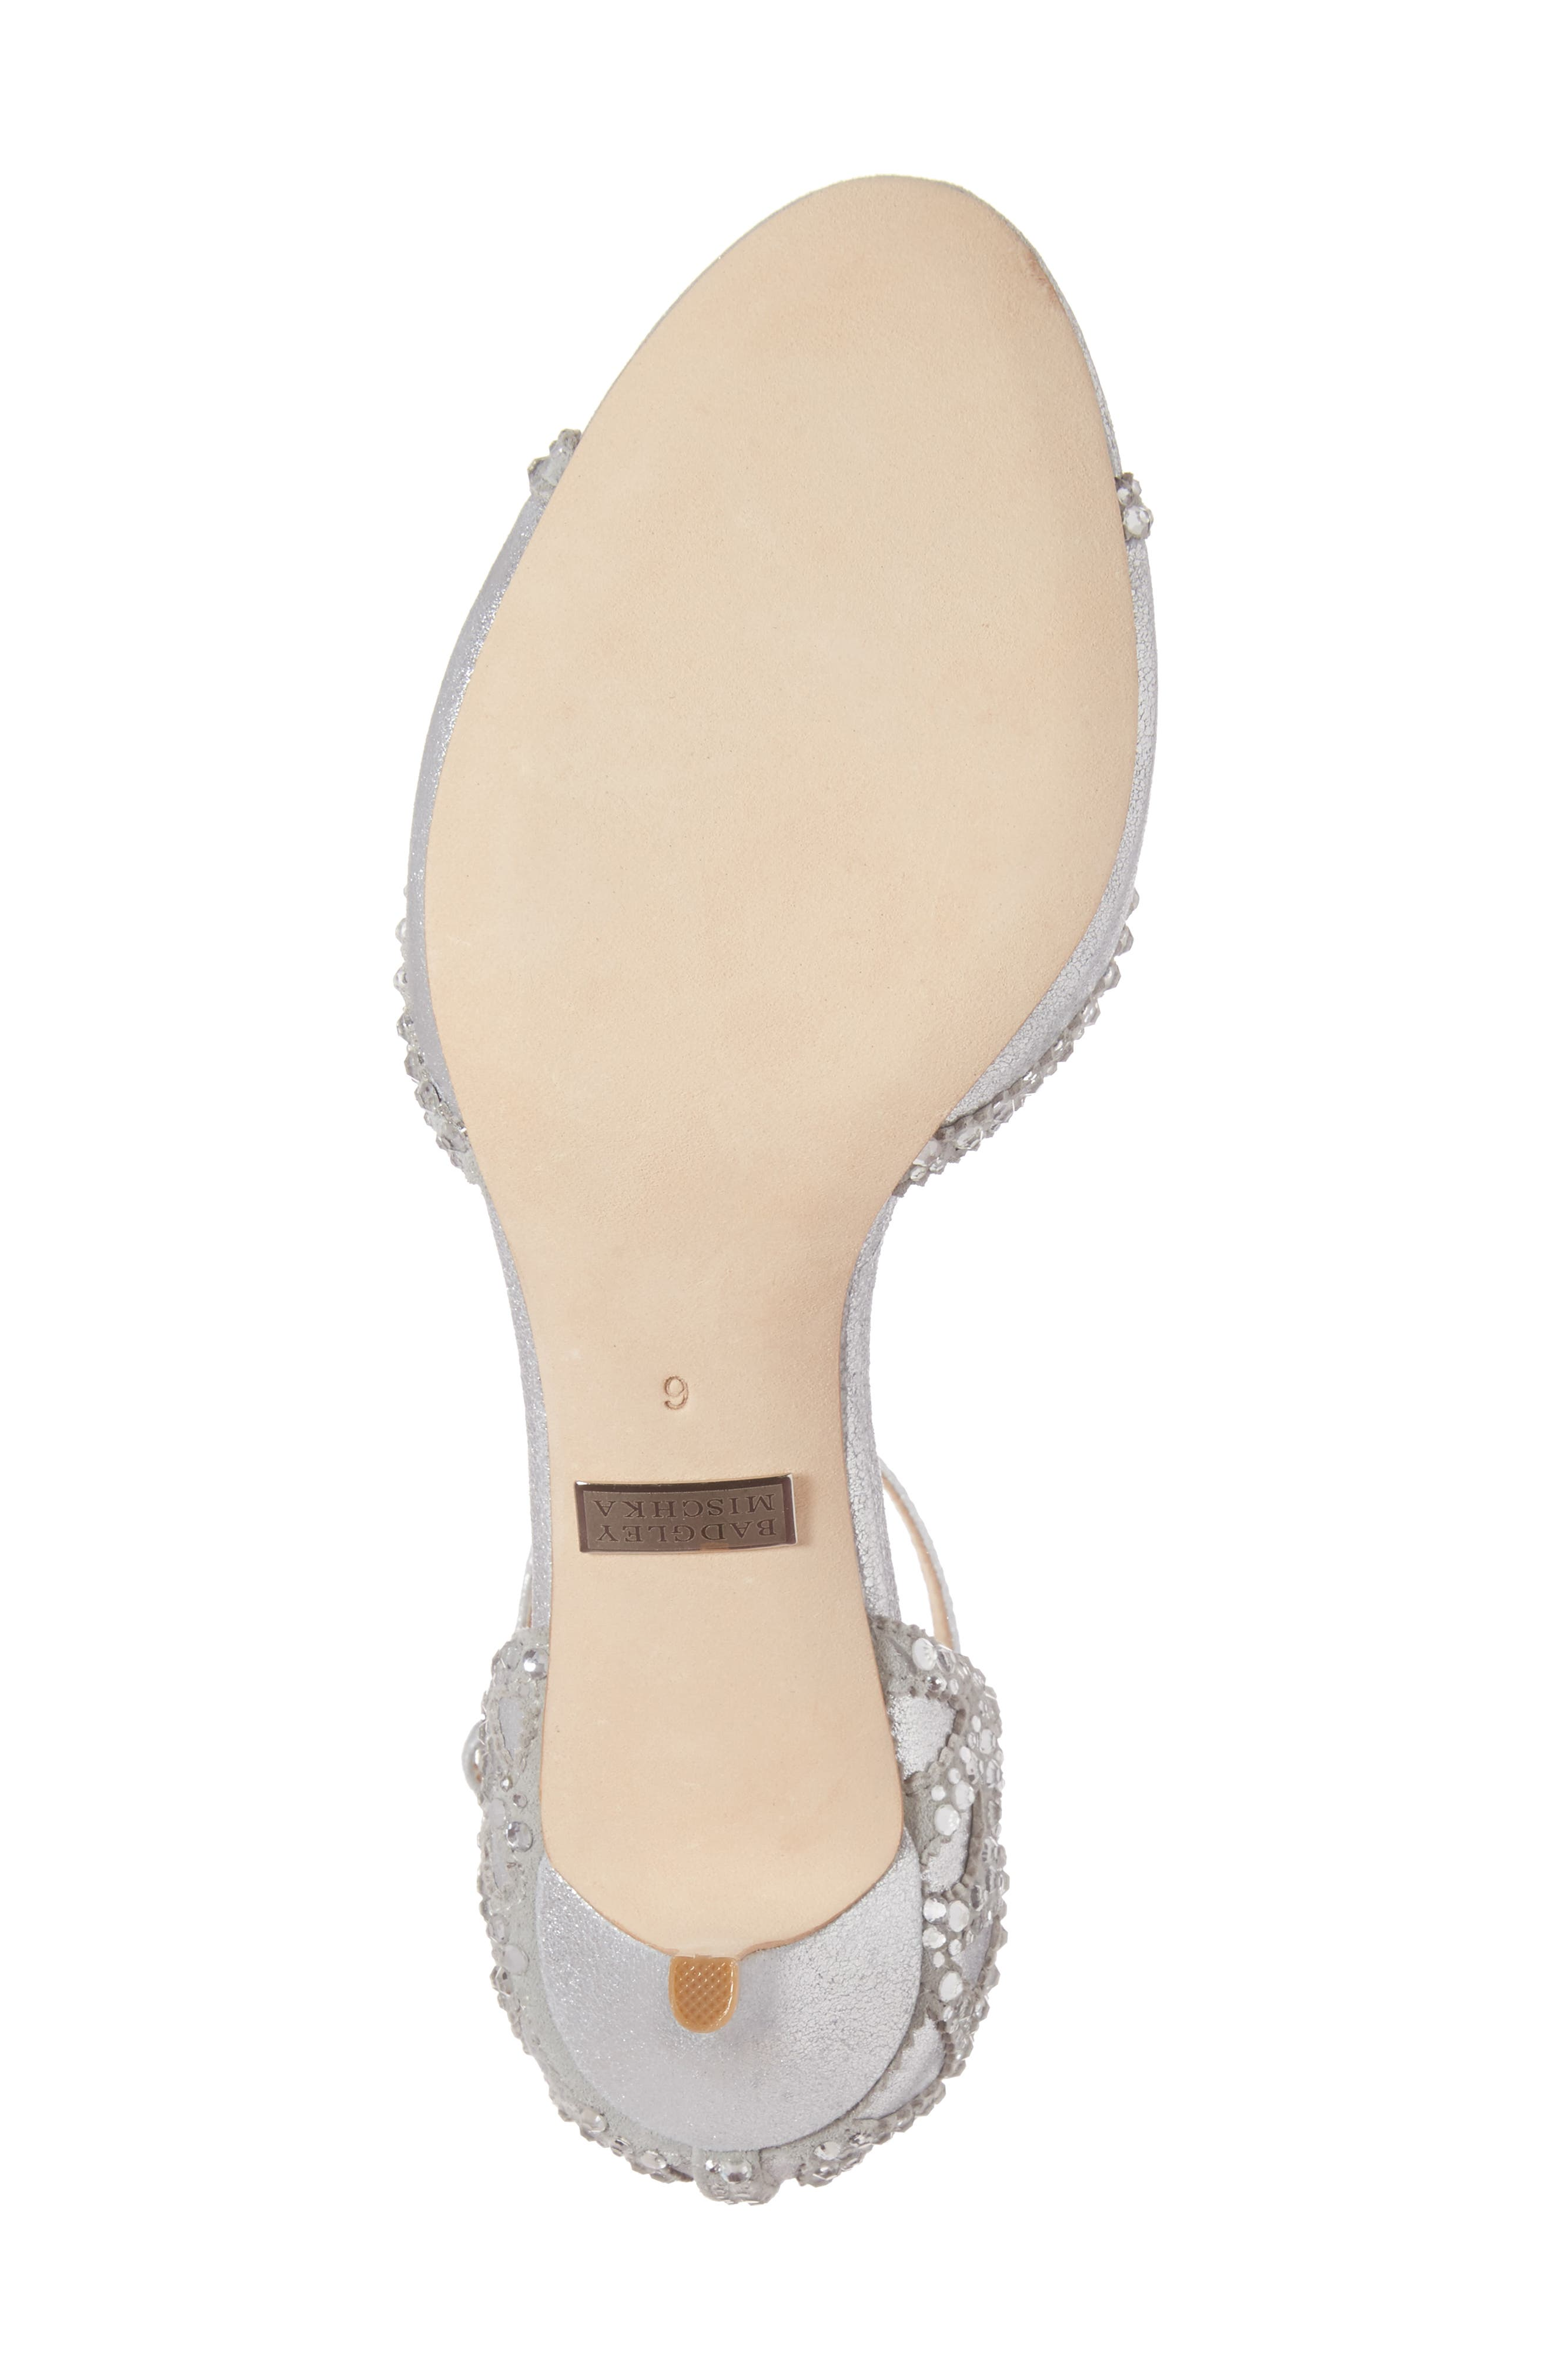 'Gillian' Crystal Embellished d'Orsay Sandal,                             Alternate thumbnail 6, color,                             SILVER METALLIC SUEDE